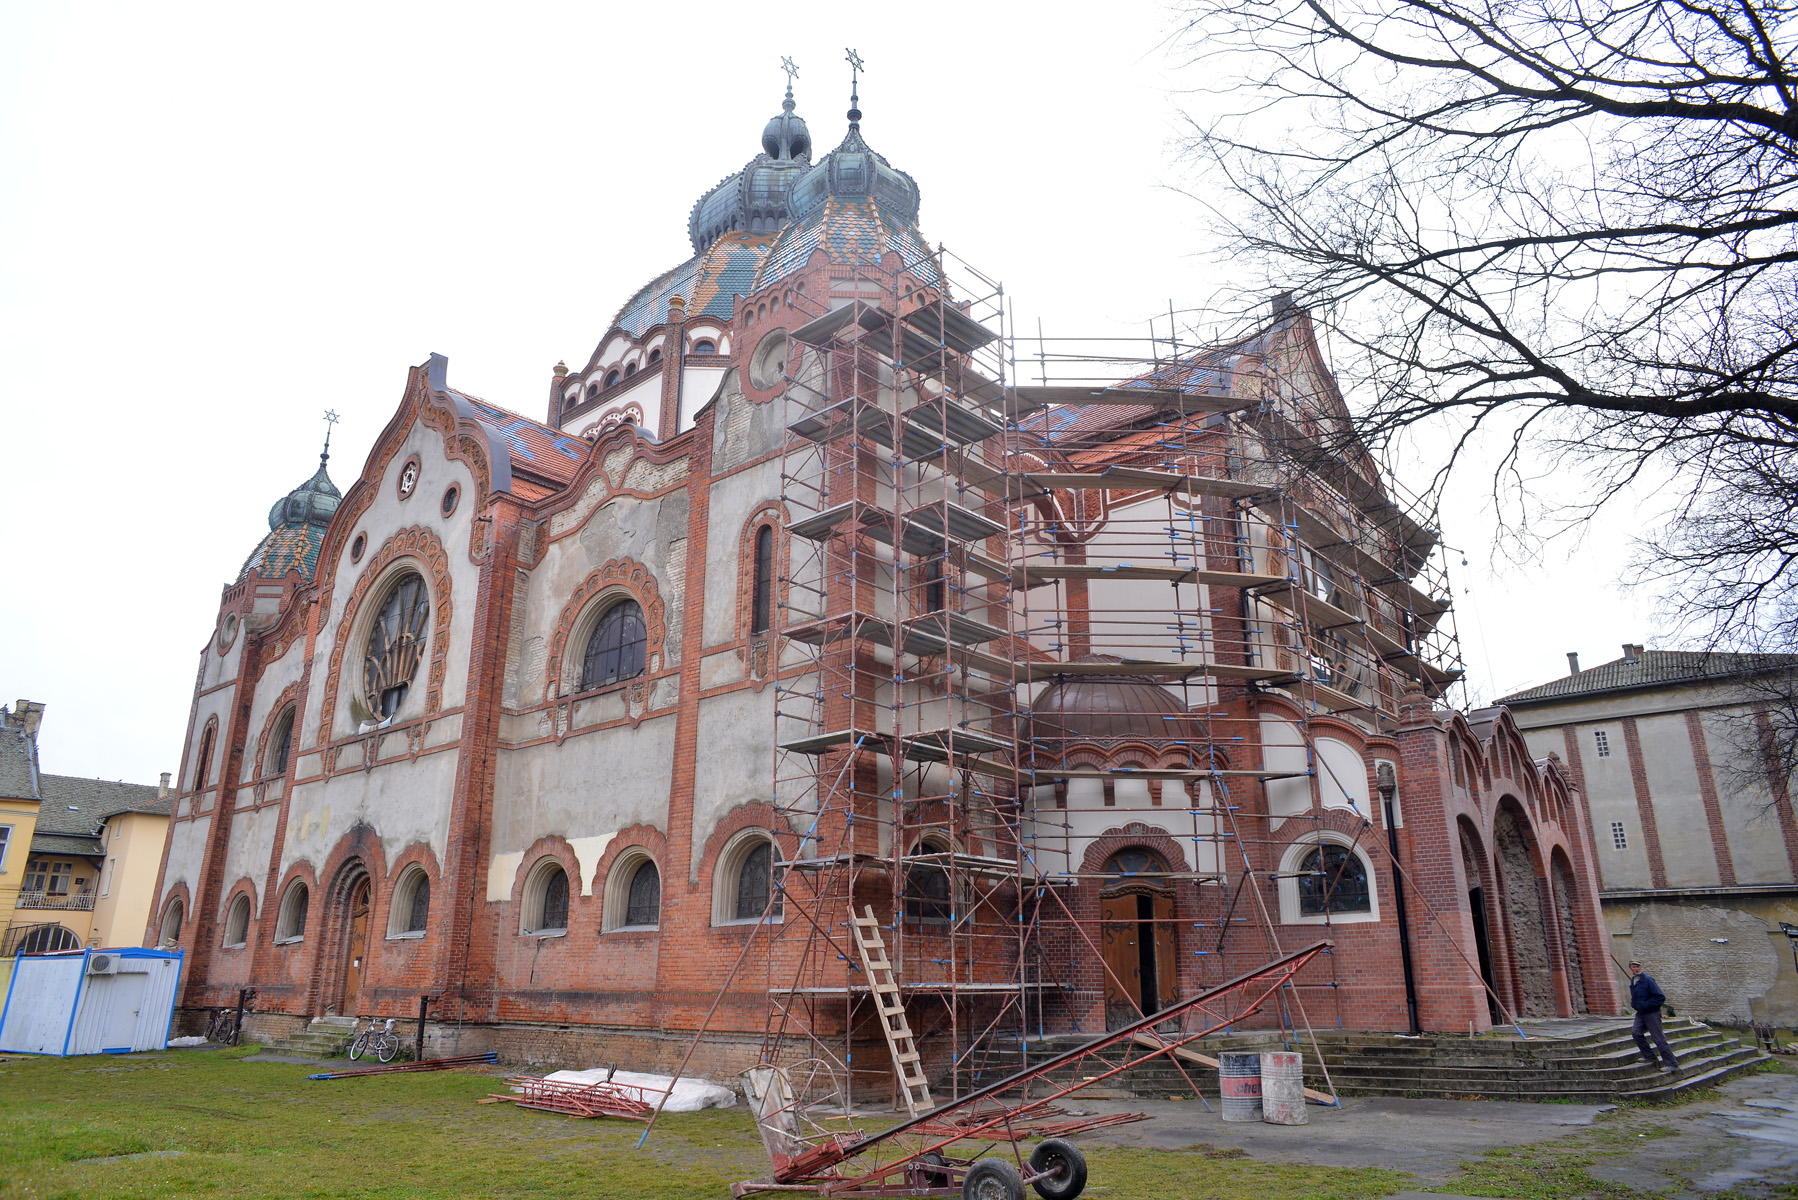 Country: SerbiaSite: Subotica SynagogueCaption: SW façade from 250º viewing angle with scafolding. Image Date: January 21, 2014Photographer: Željko Vukelić, Regional Institute for Conservation of Cultural Heritage Provenance: Southwest Façade Pre-Project Report Original: email from Sarah Sher